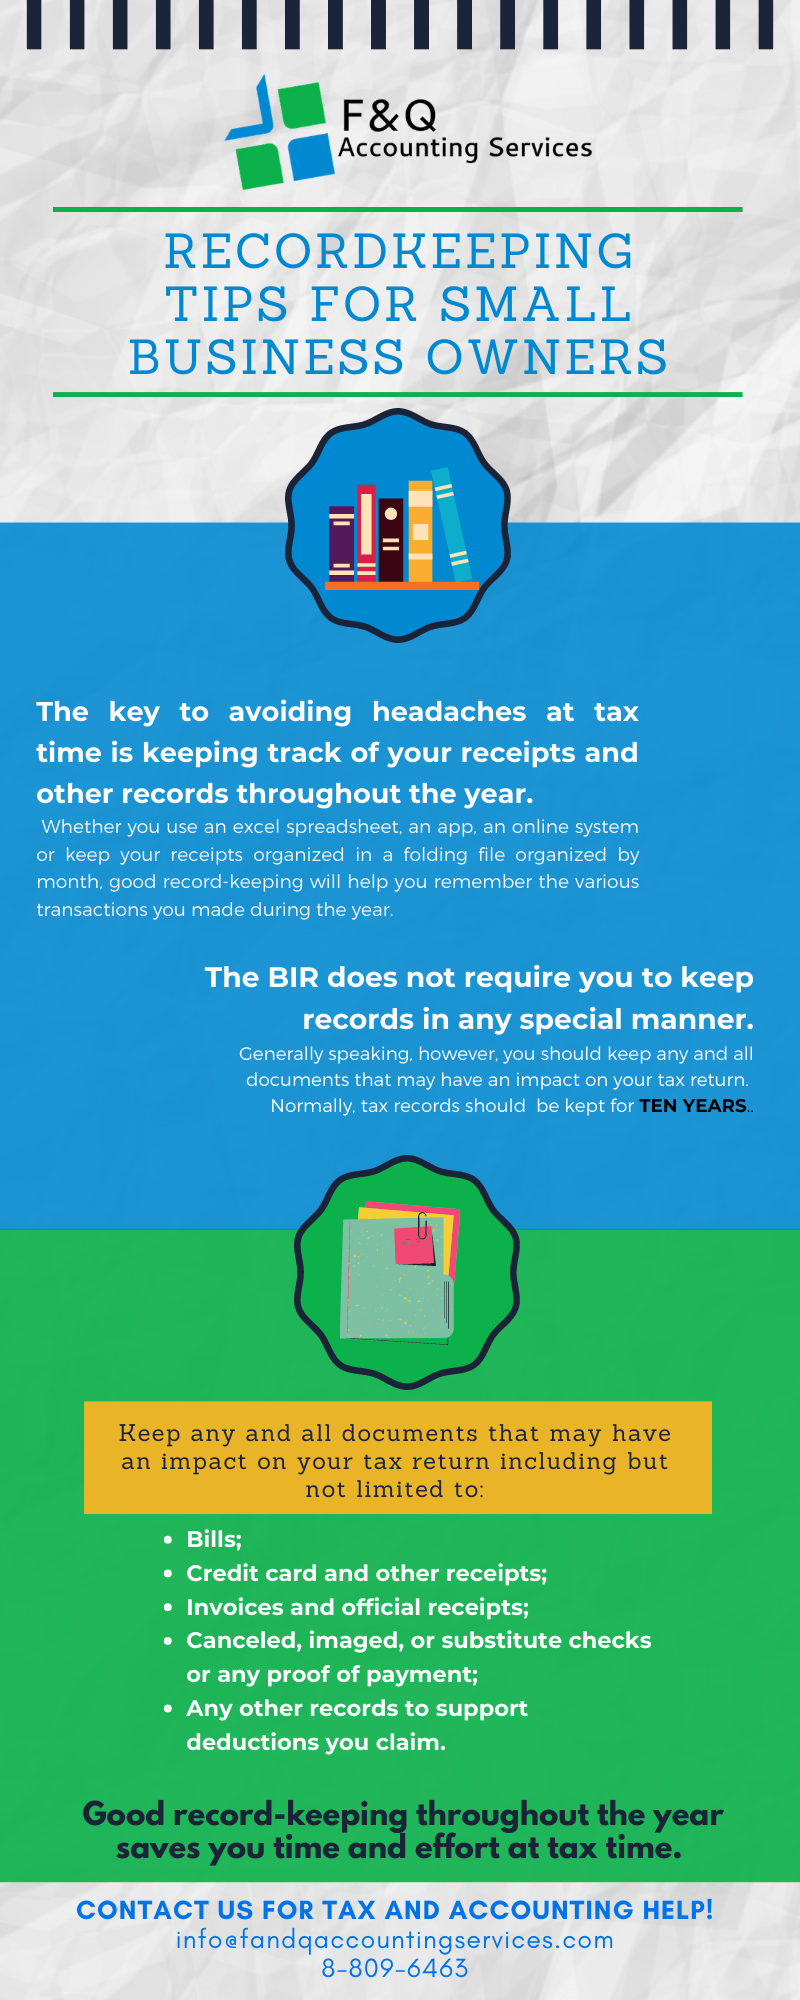 Recordkeeping Tips For Small Business Owners